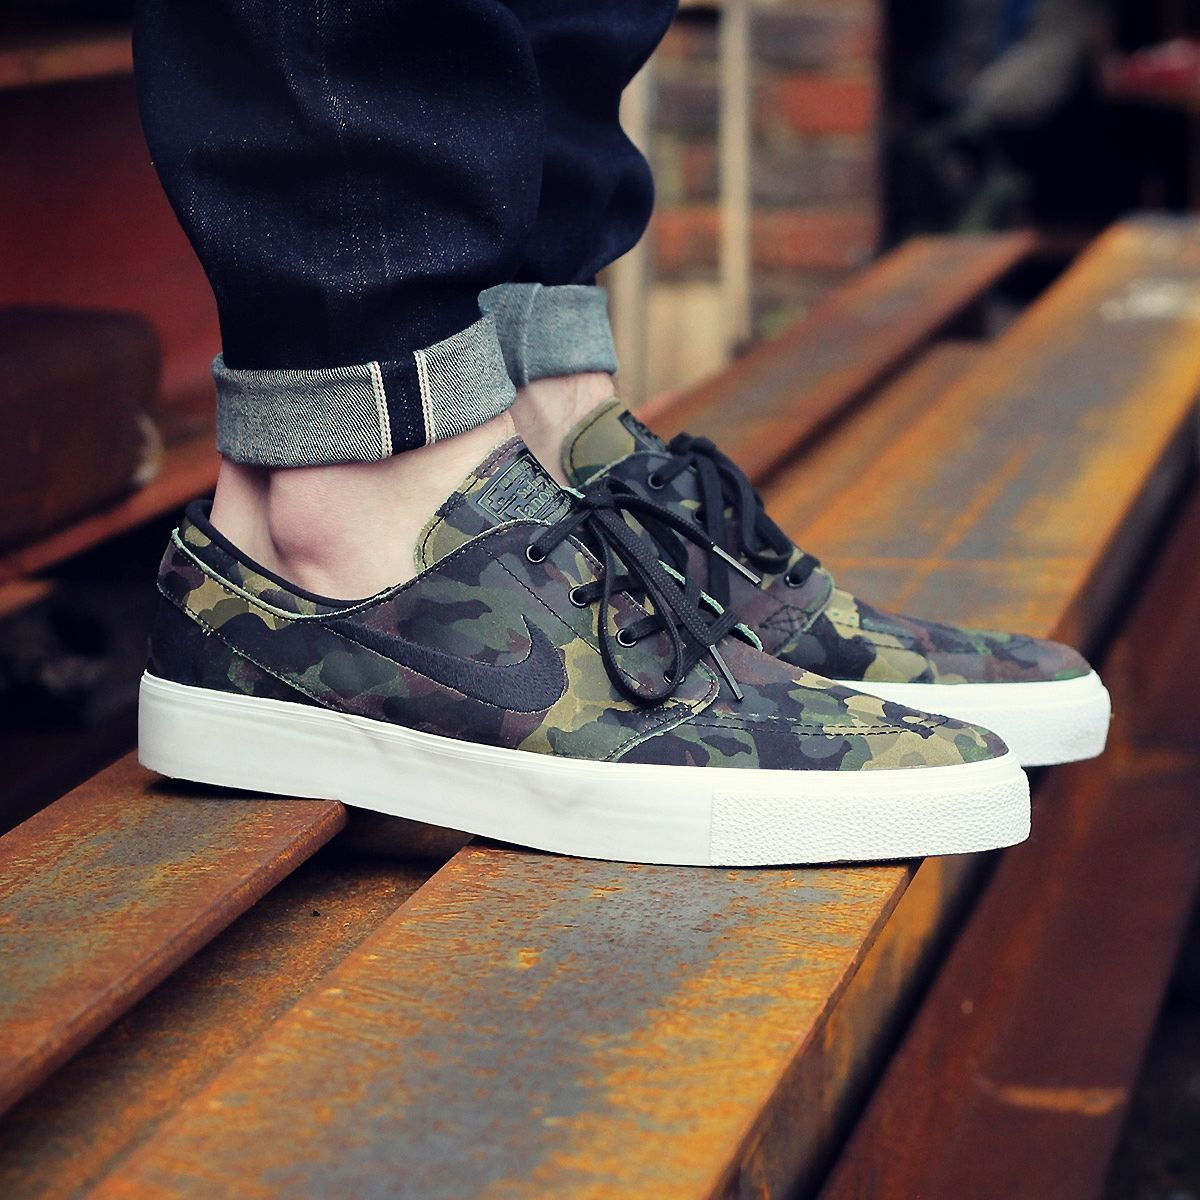 The Nike SB Stefan Janoski Premium HT Shoes in this strong